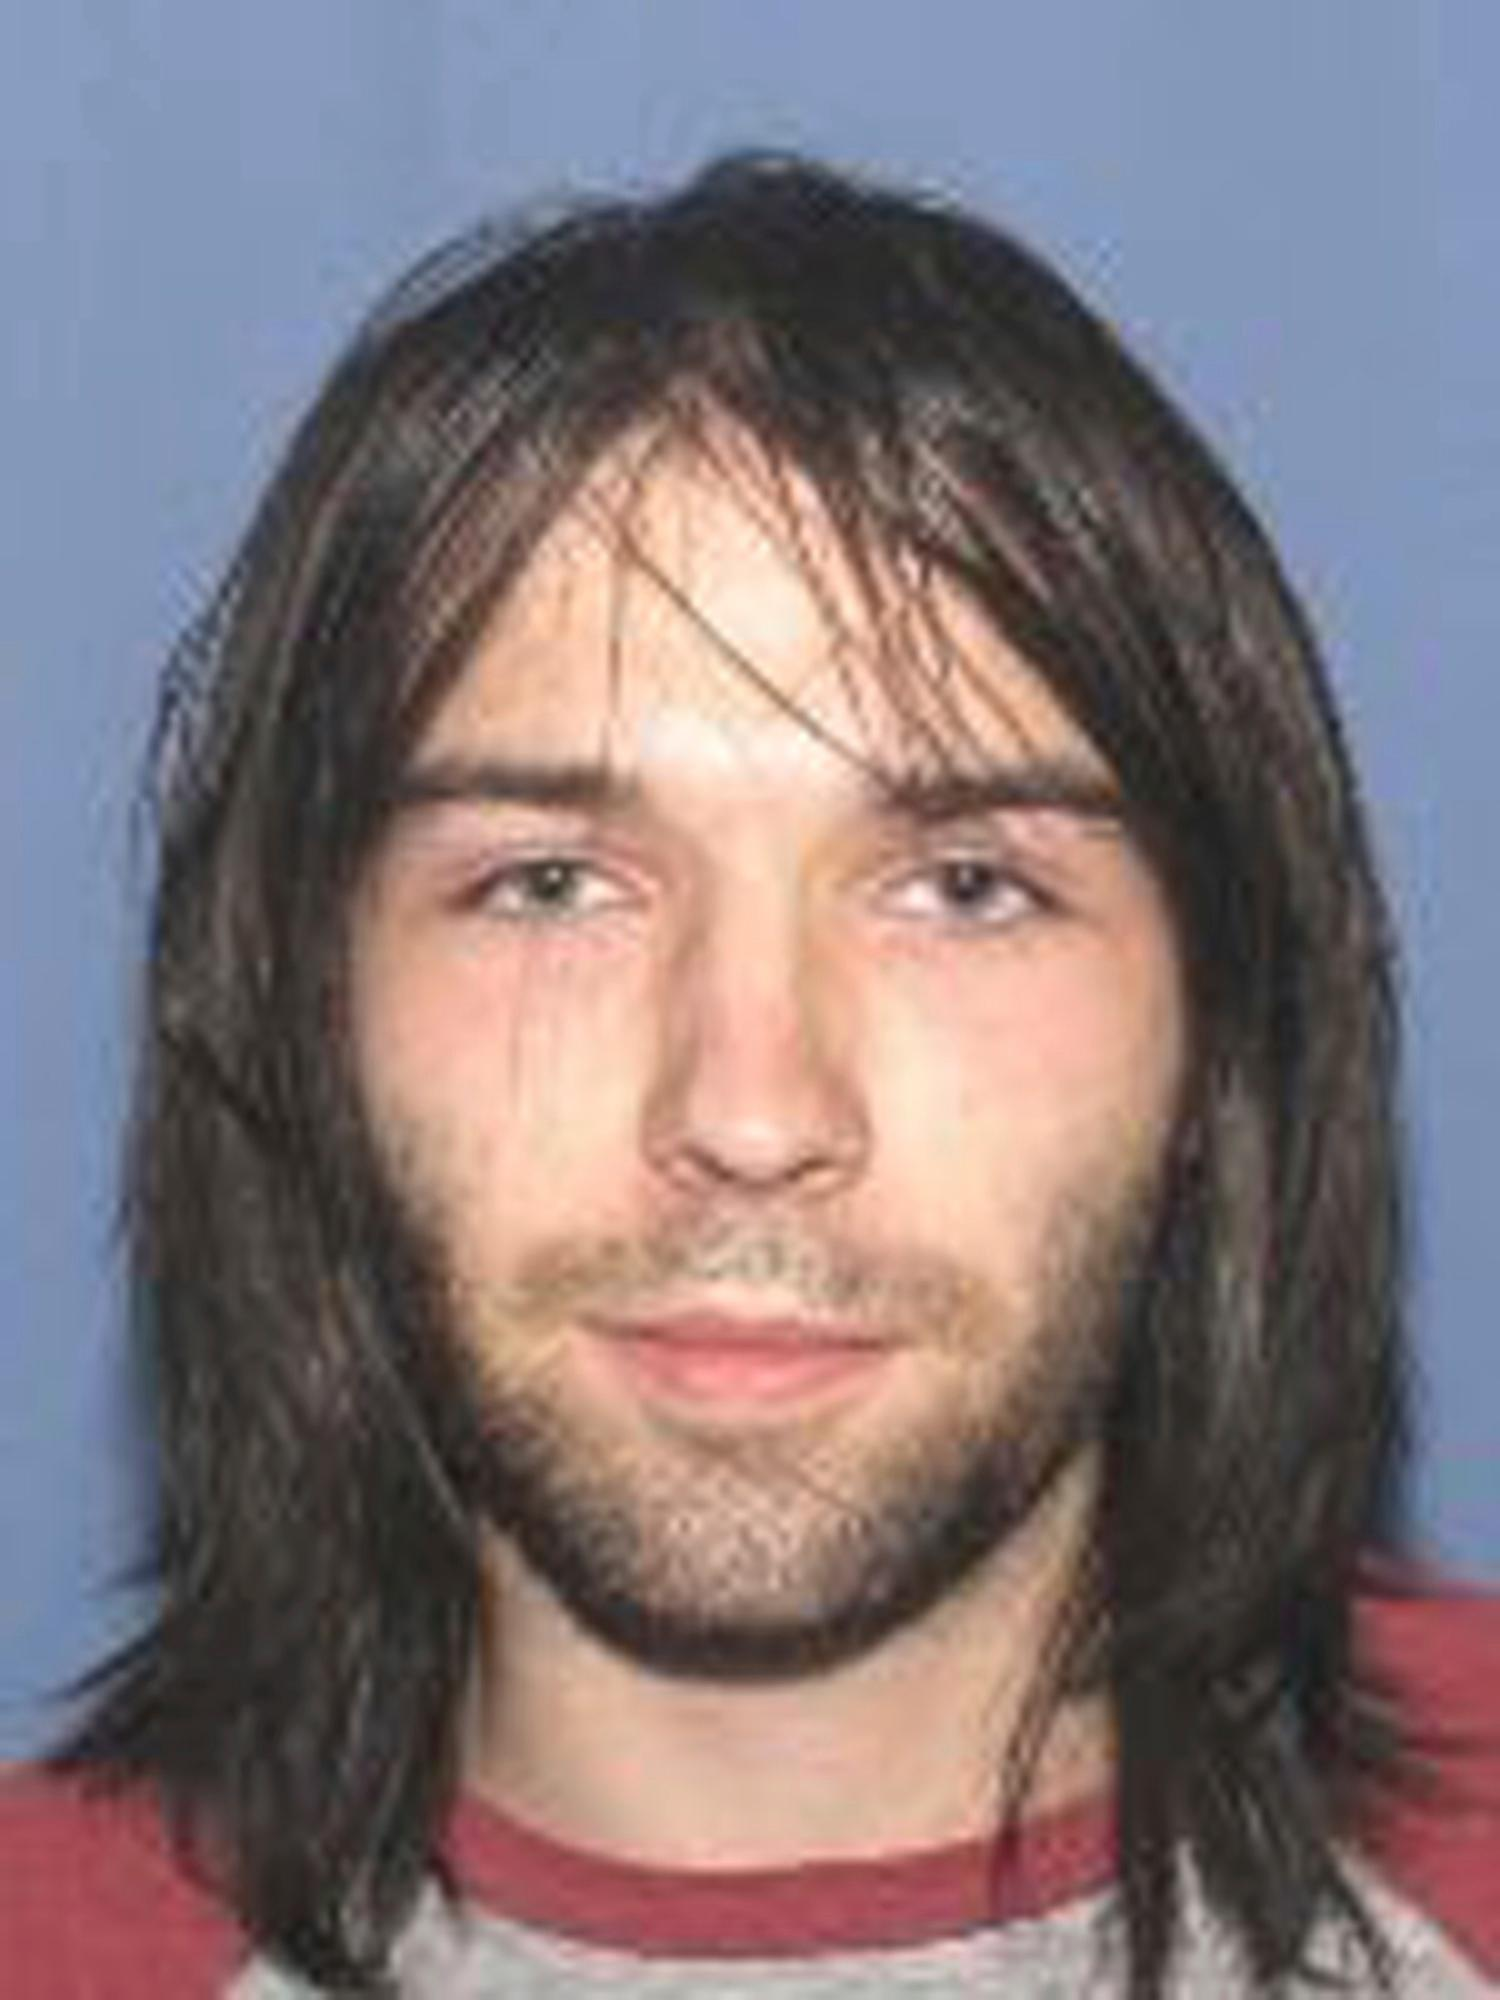 This undated photo provided by the Lawrence County Ohio Sheriff's Office shows Arron Lawson. Multiple people were found fatally shot and another person was discovered stabbed and critically wounded at a pair of residences in southeast Ohio. Officials were hunting Thursday, Oct. 12, 2017, for Lawson, whom they called a &quot;person of interest&quot; in the attacks. (Lawrence County Ohio Sheriff's Office via AP)<p></p>